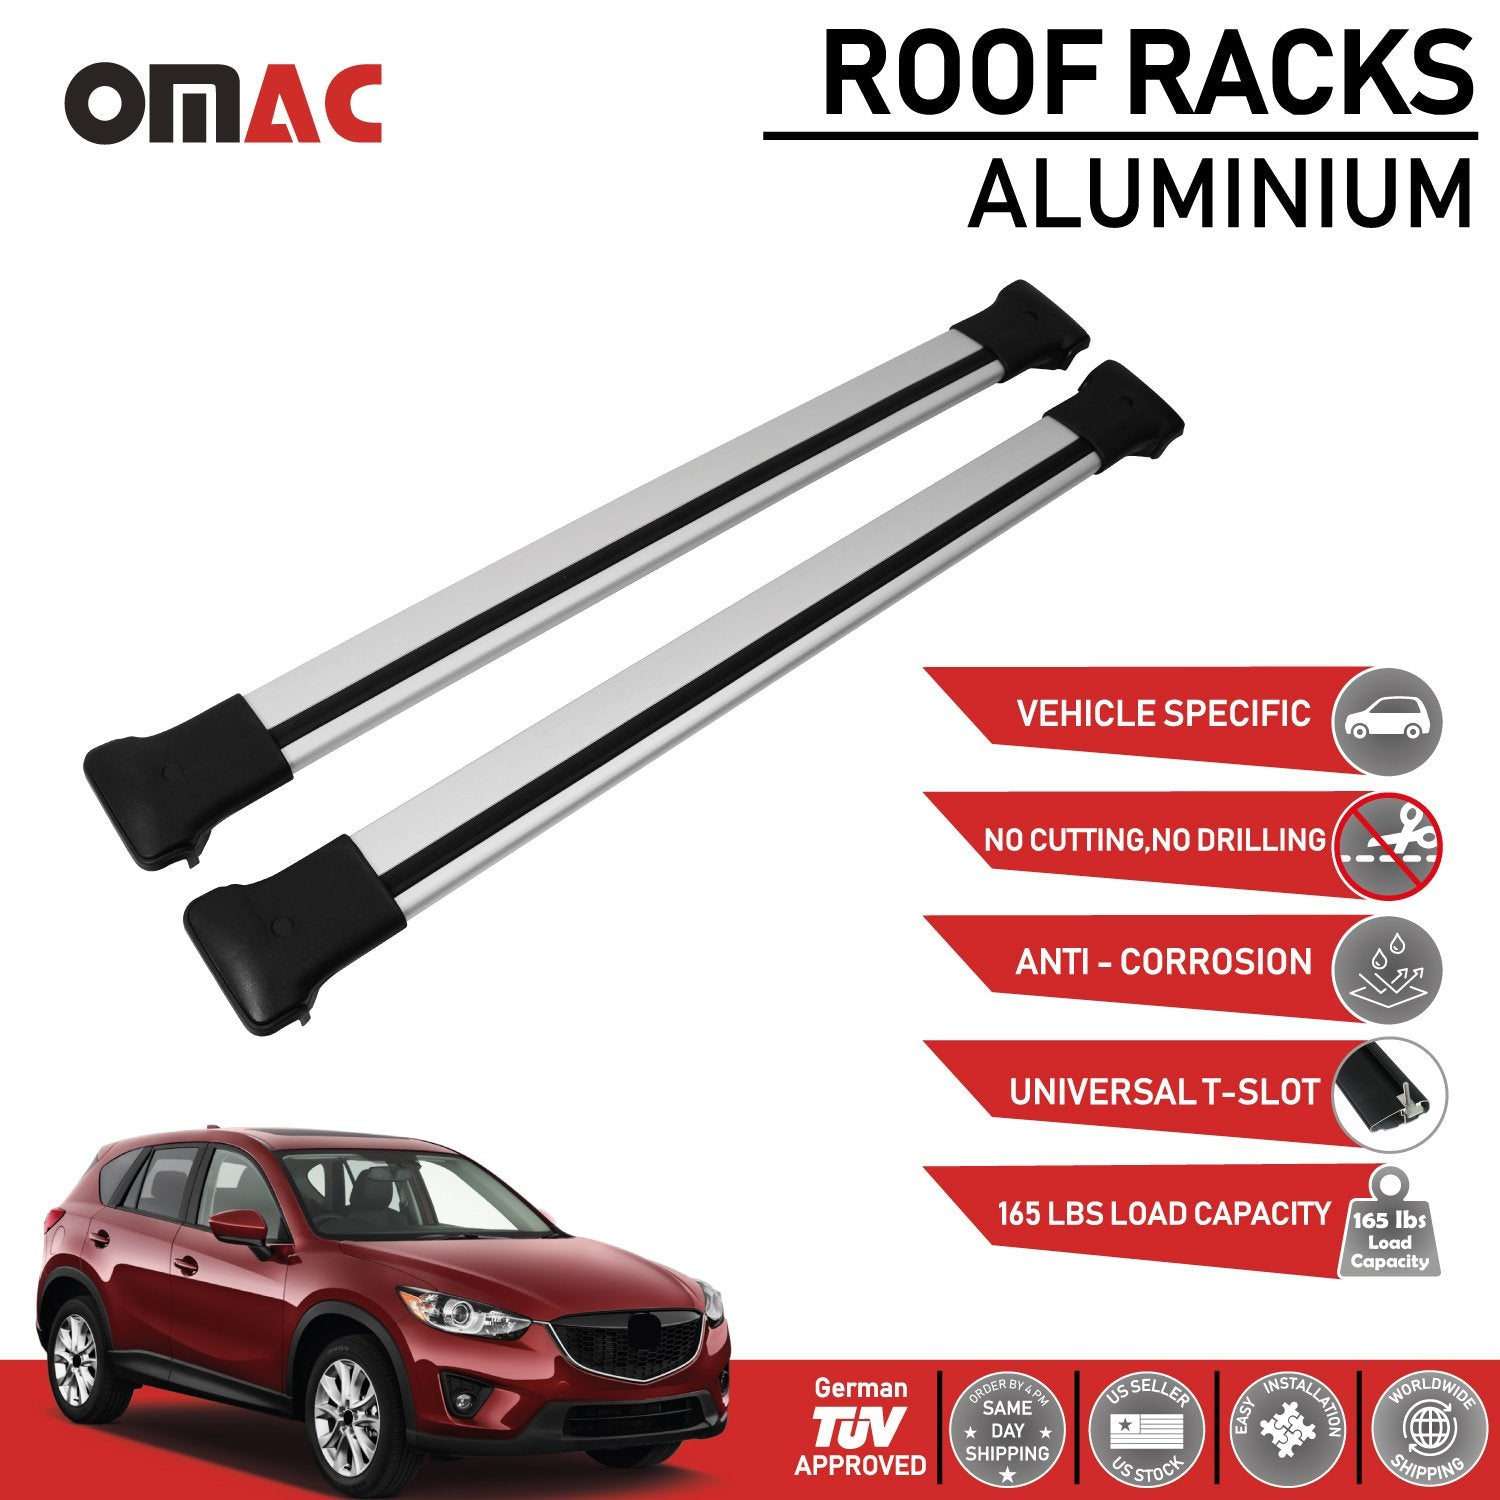 Roof Rack Cross Bars Luggage Carrier Silver fits Mazda CX-5 2013-2017